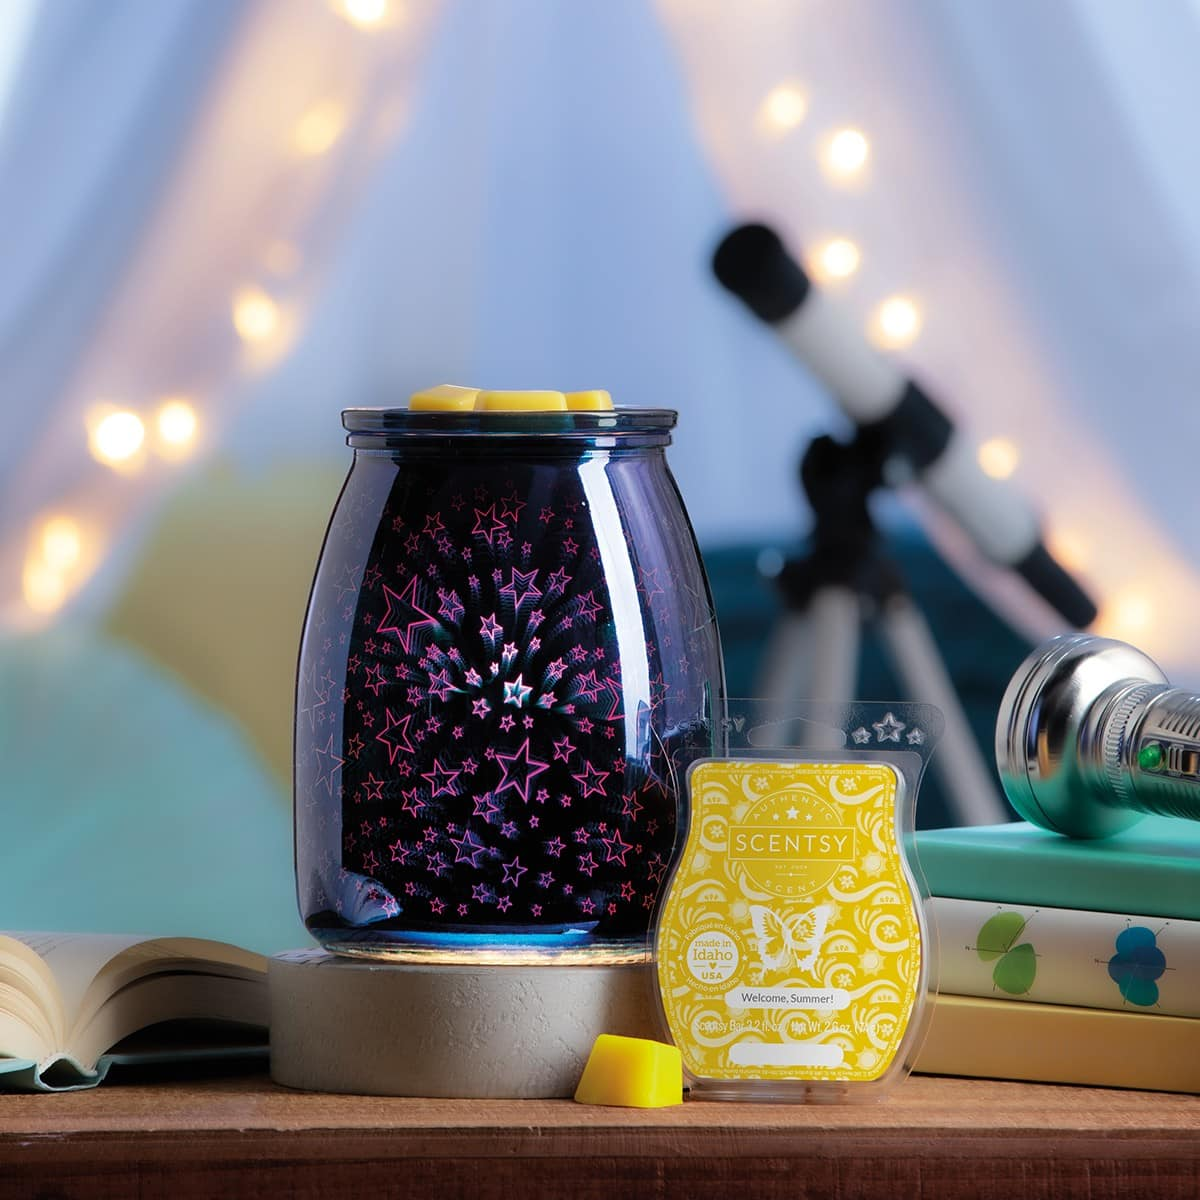 SCENTSY JUNE 2020 WARMER & SCENT OF THE MONTH - SUMMER NIGHTS WARMER & WELCOME SUMMER